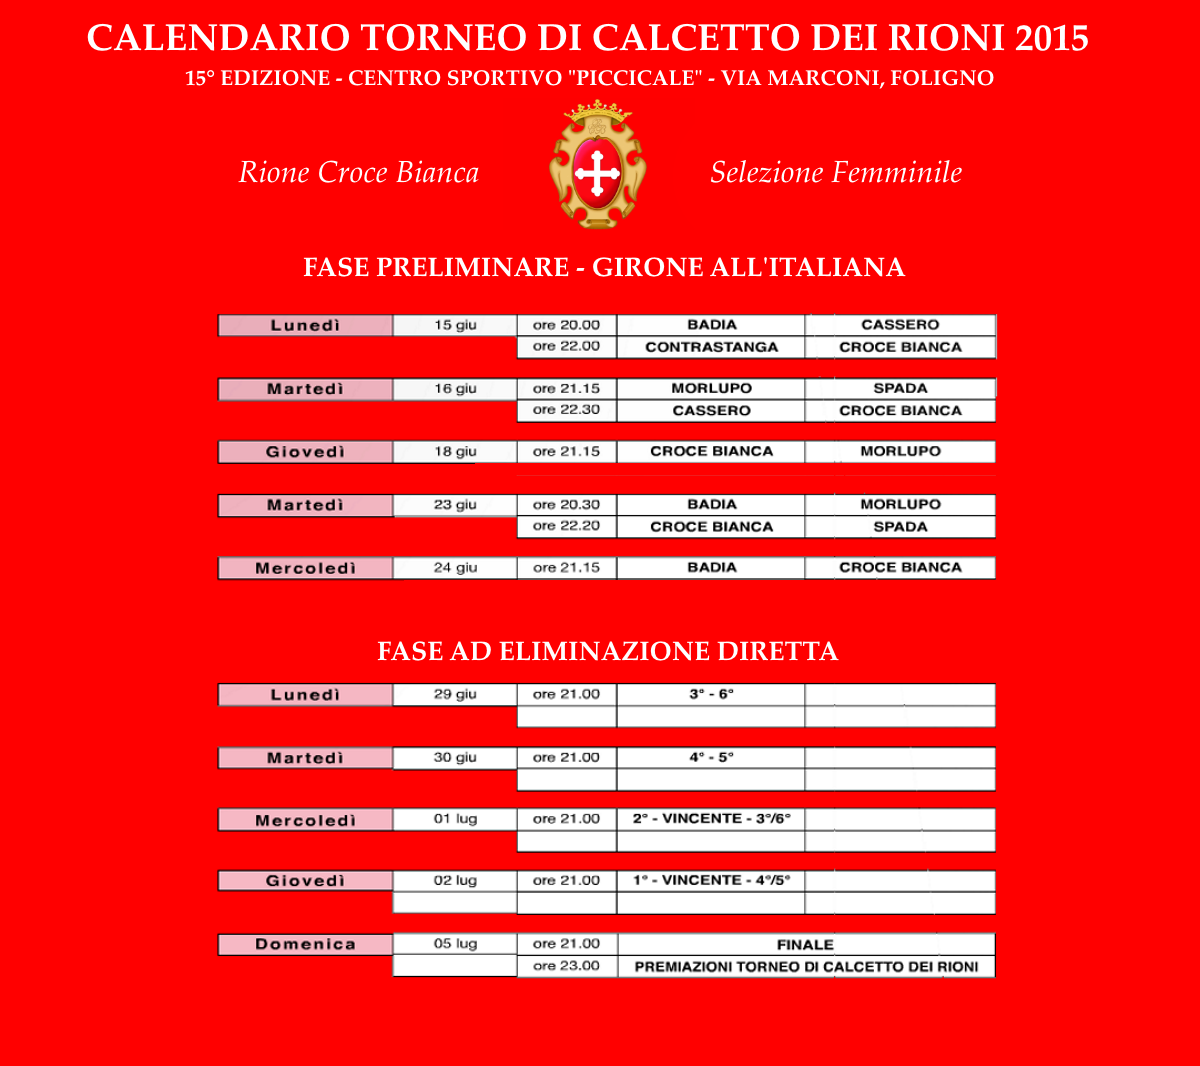 CalendarioFemminileTorneoCalcettoRioni2015